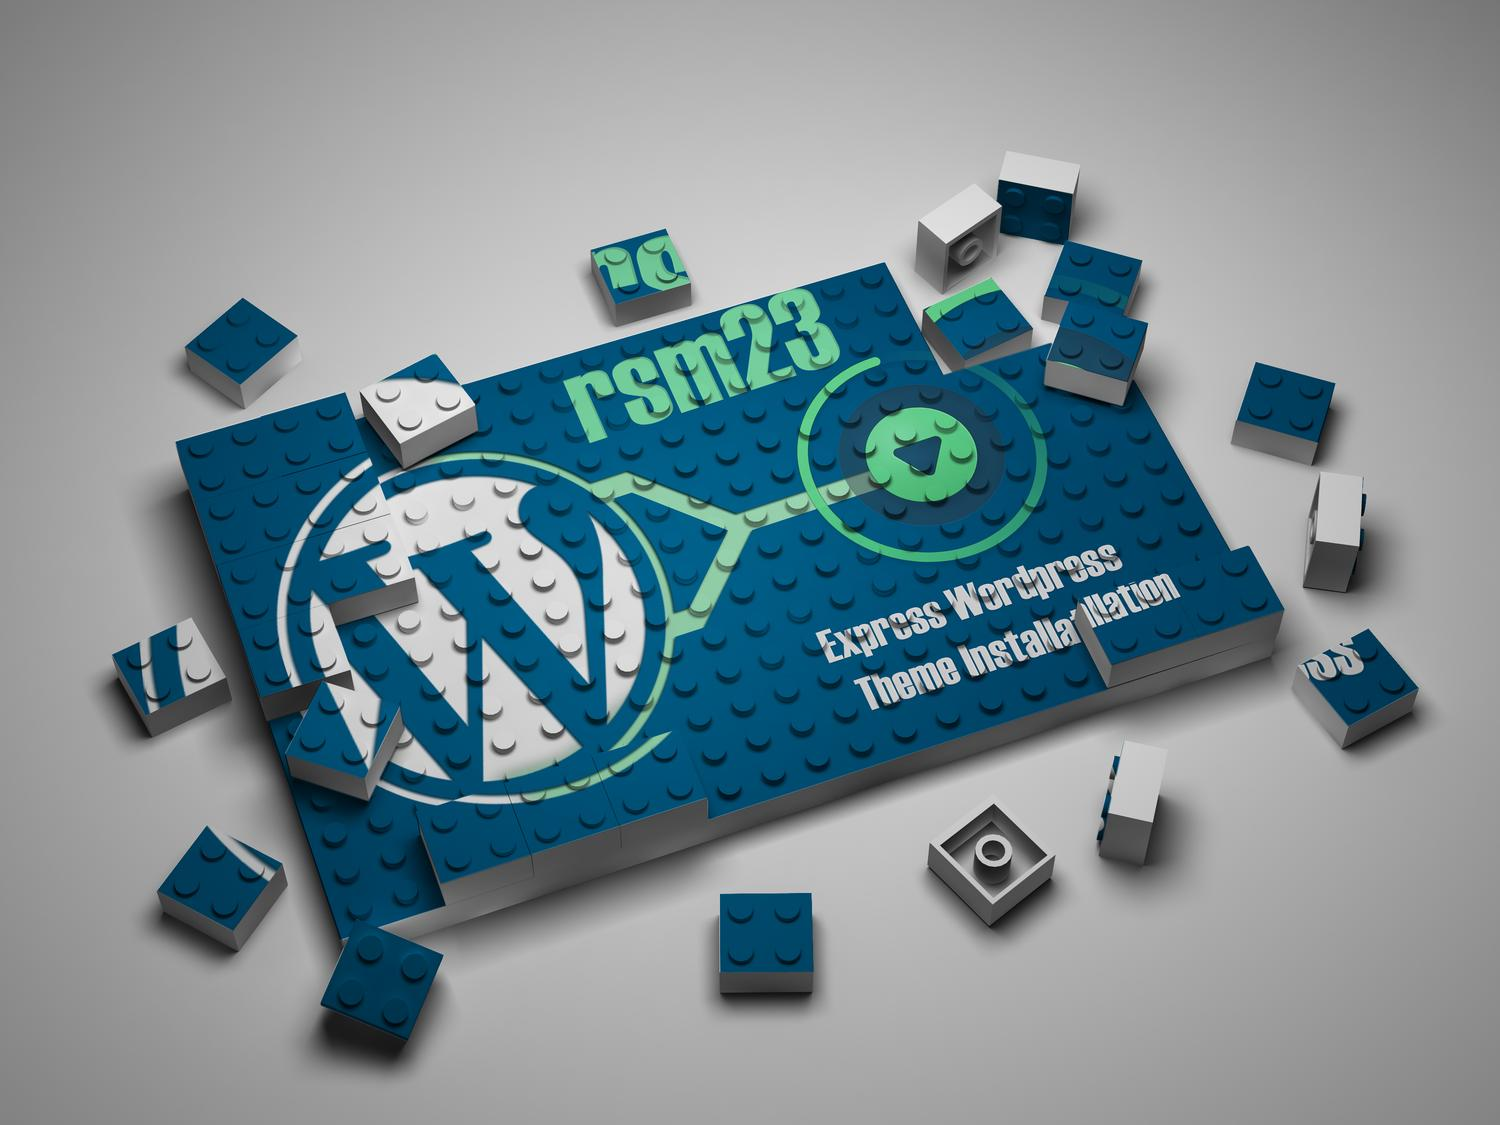 Wordpress Installation (+Demo Content, Logo, SEO, Security, Ecommerce)  by rsm23 - 61928